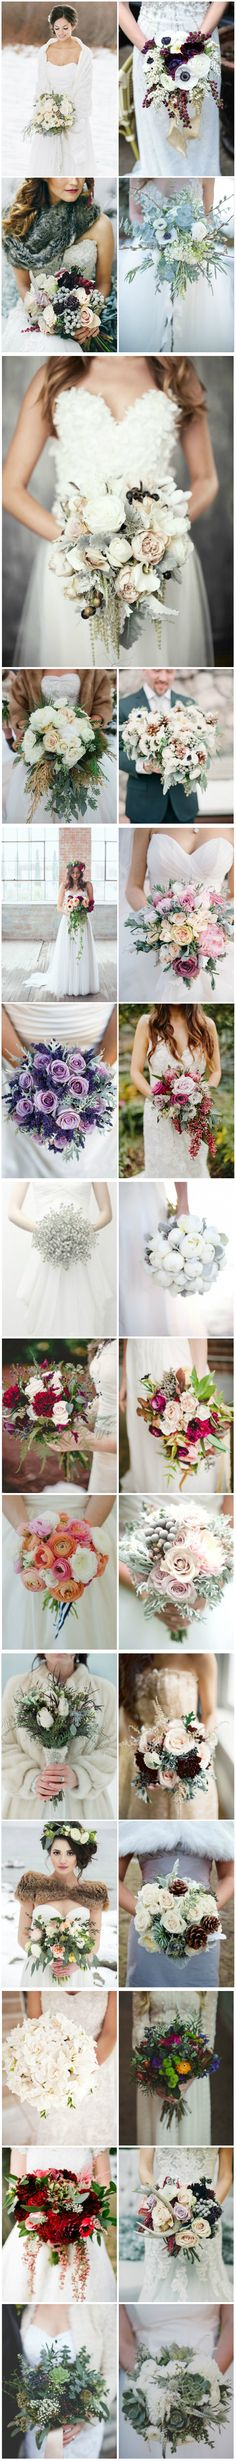 Winter wedding photo inspiration and bouquet ideas! Elegant Winter Wedding, Winter Wedding Flowers, Floral Wedding, Wedding Colors, Fall Wedding, Wedding Bouquets, Our Wedding, Dream Wedding, Winter Weddings